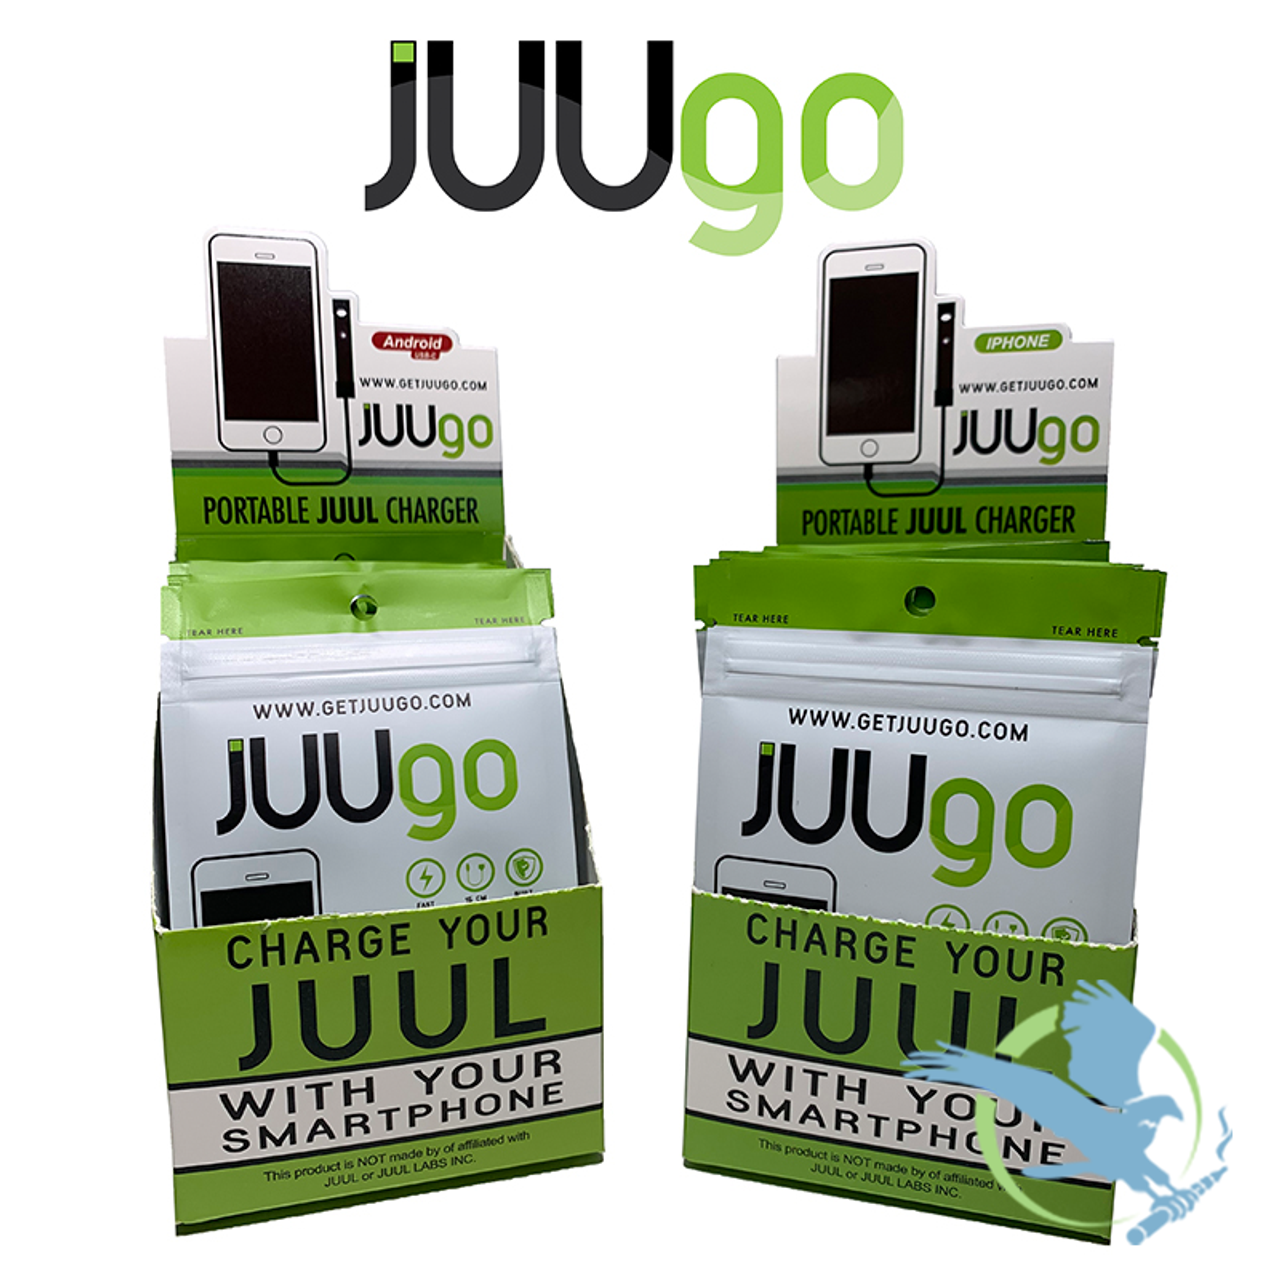 JUUGO 24 Pack Display For IPhone And Android *Drop Ships* (MSRP $15 00 Per  Cable)